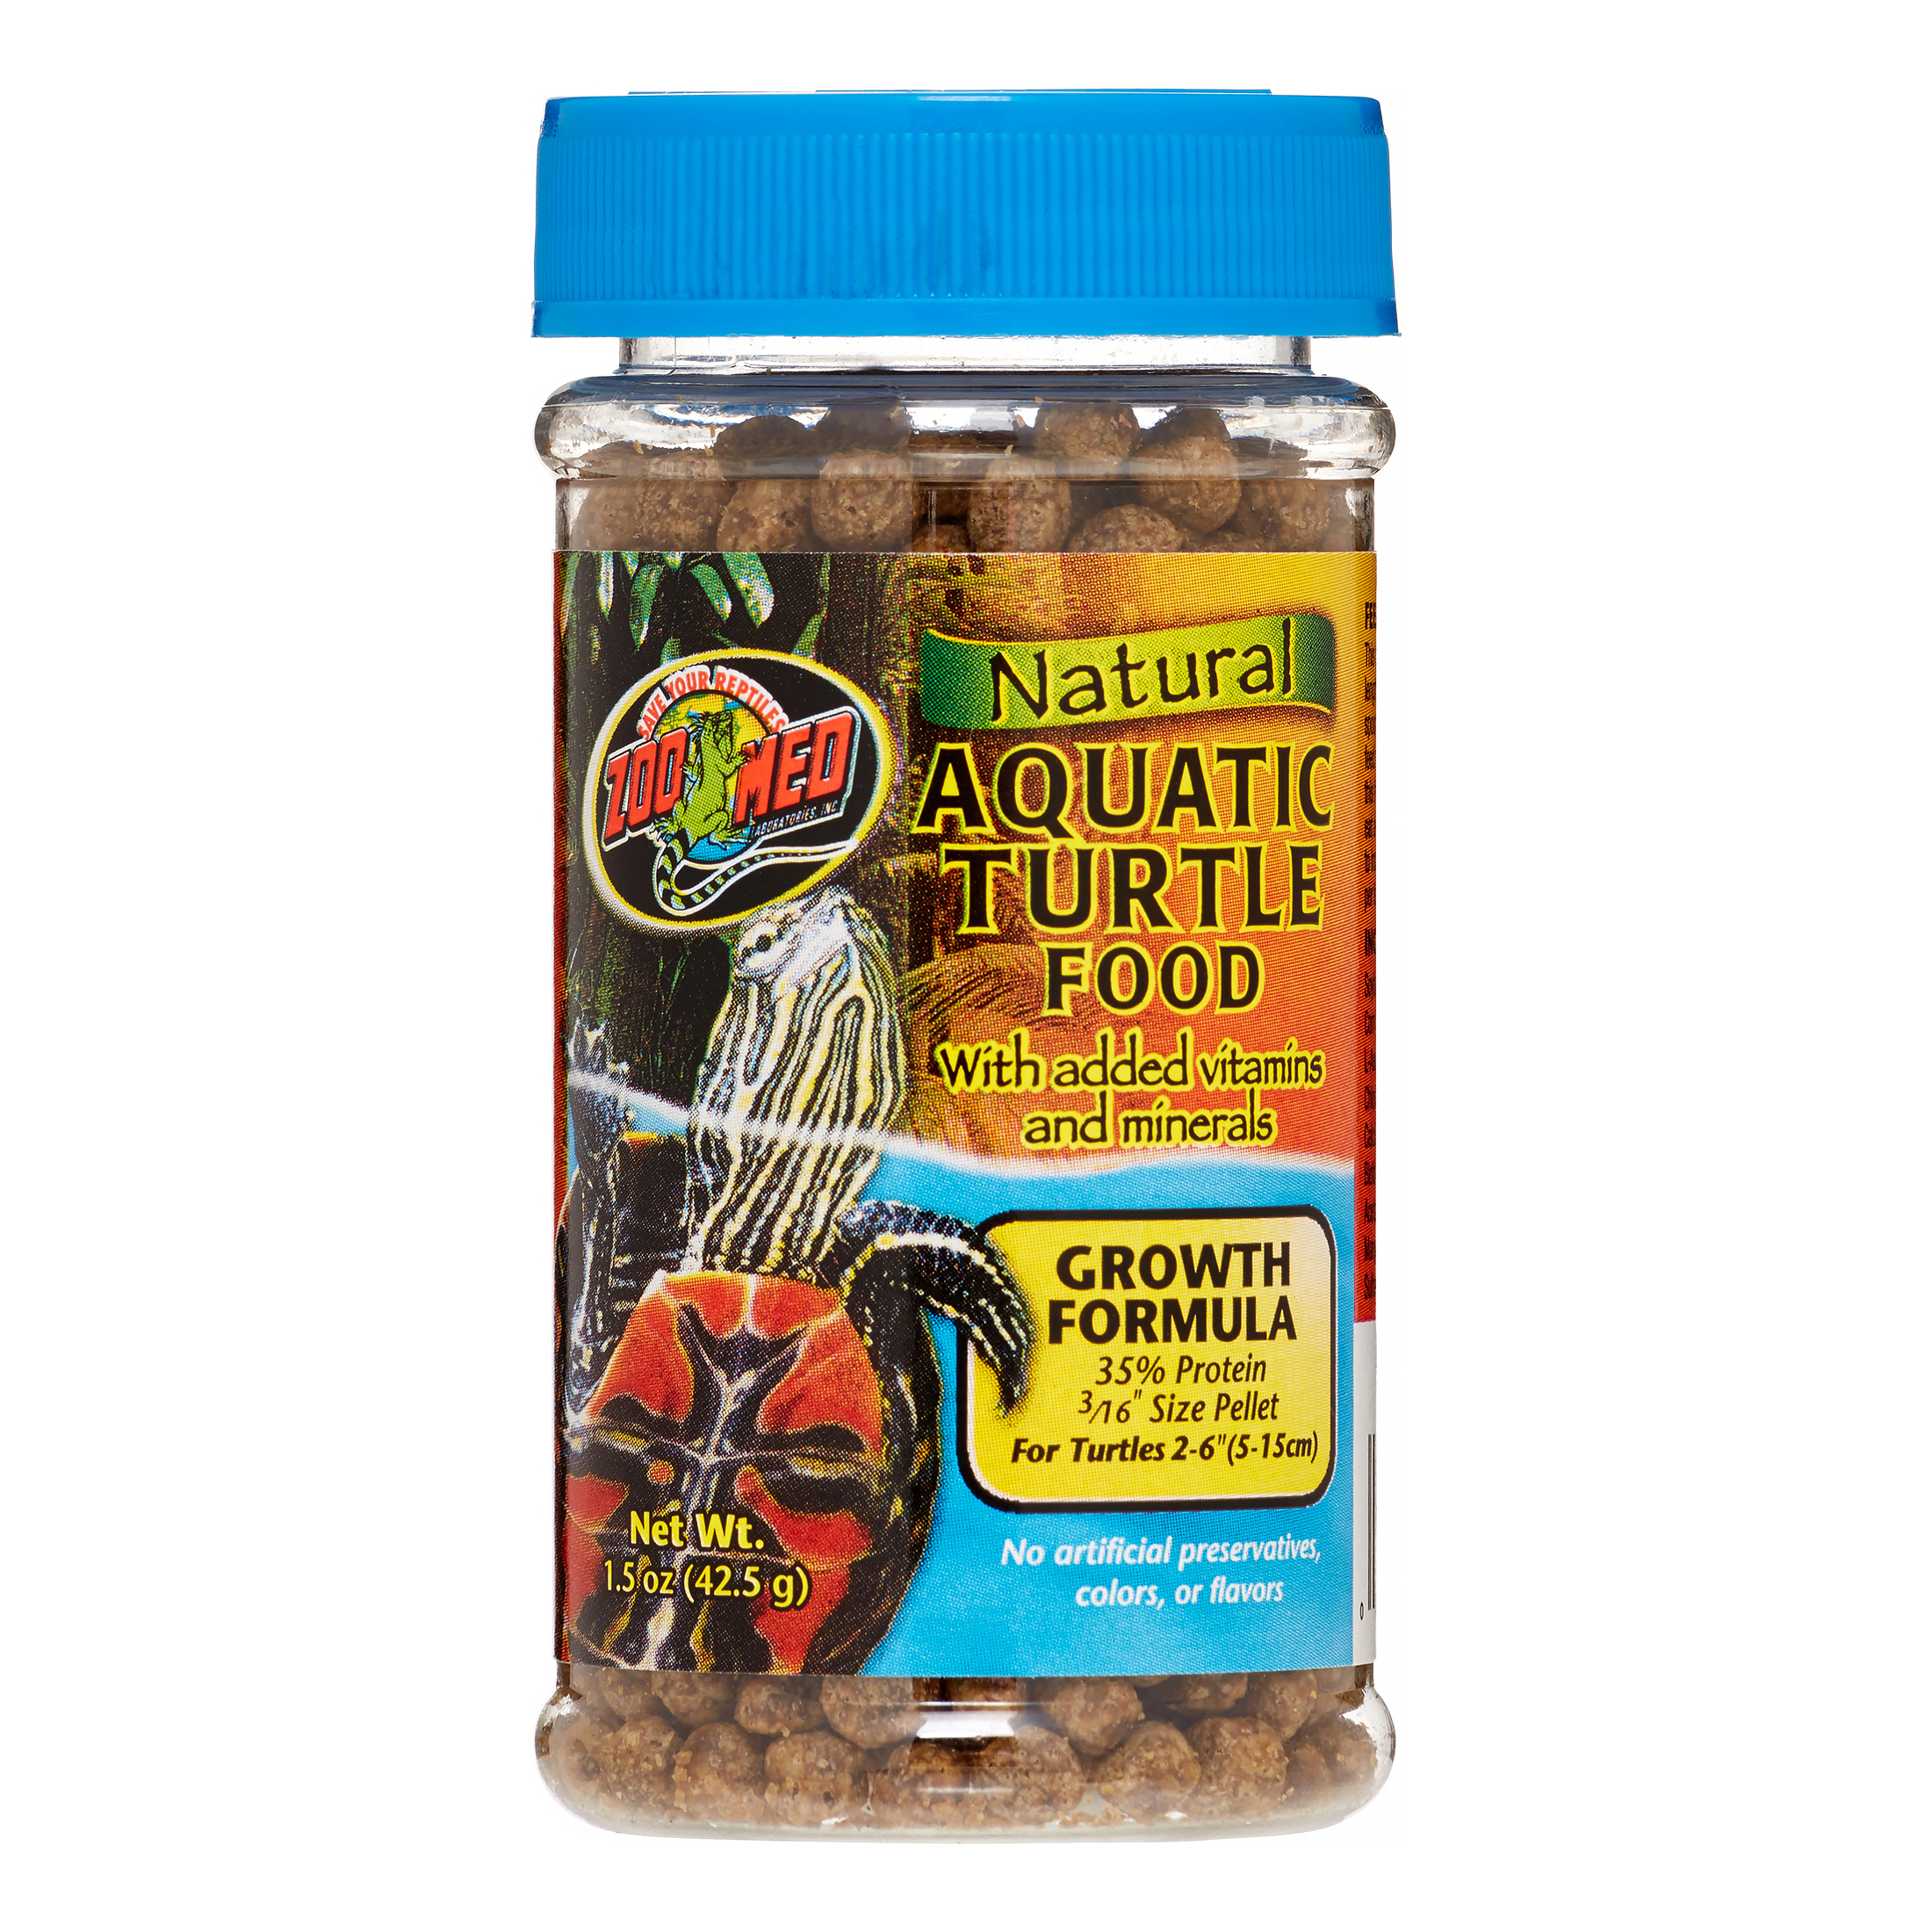 Zoo Med Natural Growth Formula Aquatic Turtle Food, 1.85 Oz by Zoo Med Laboratories Inc